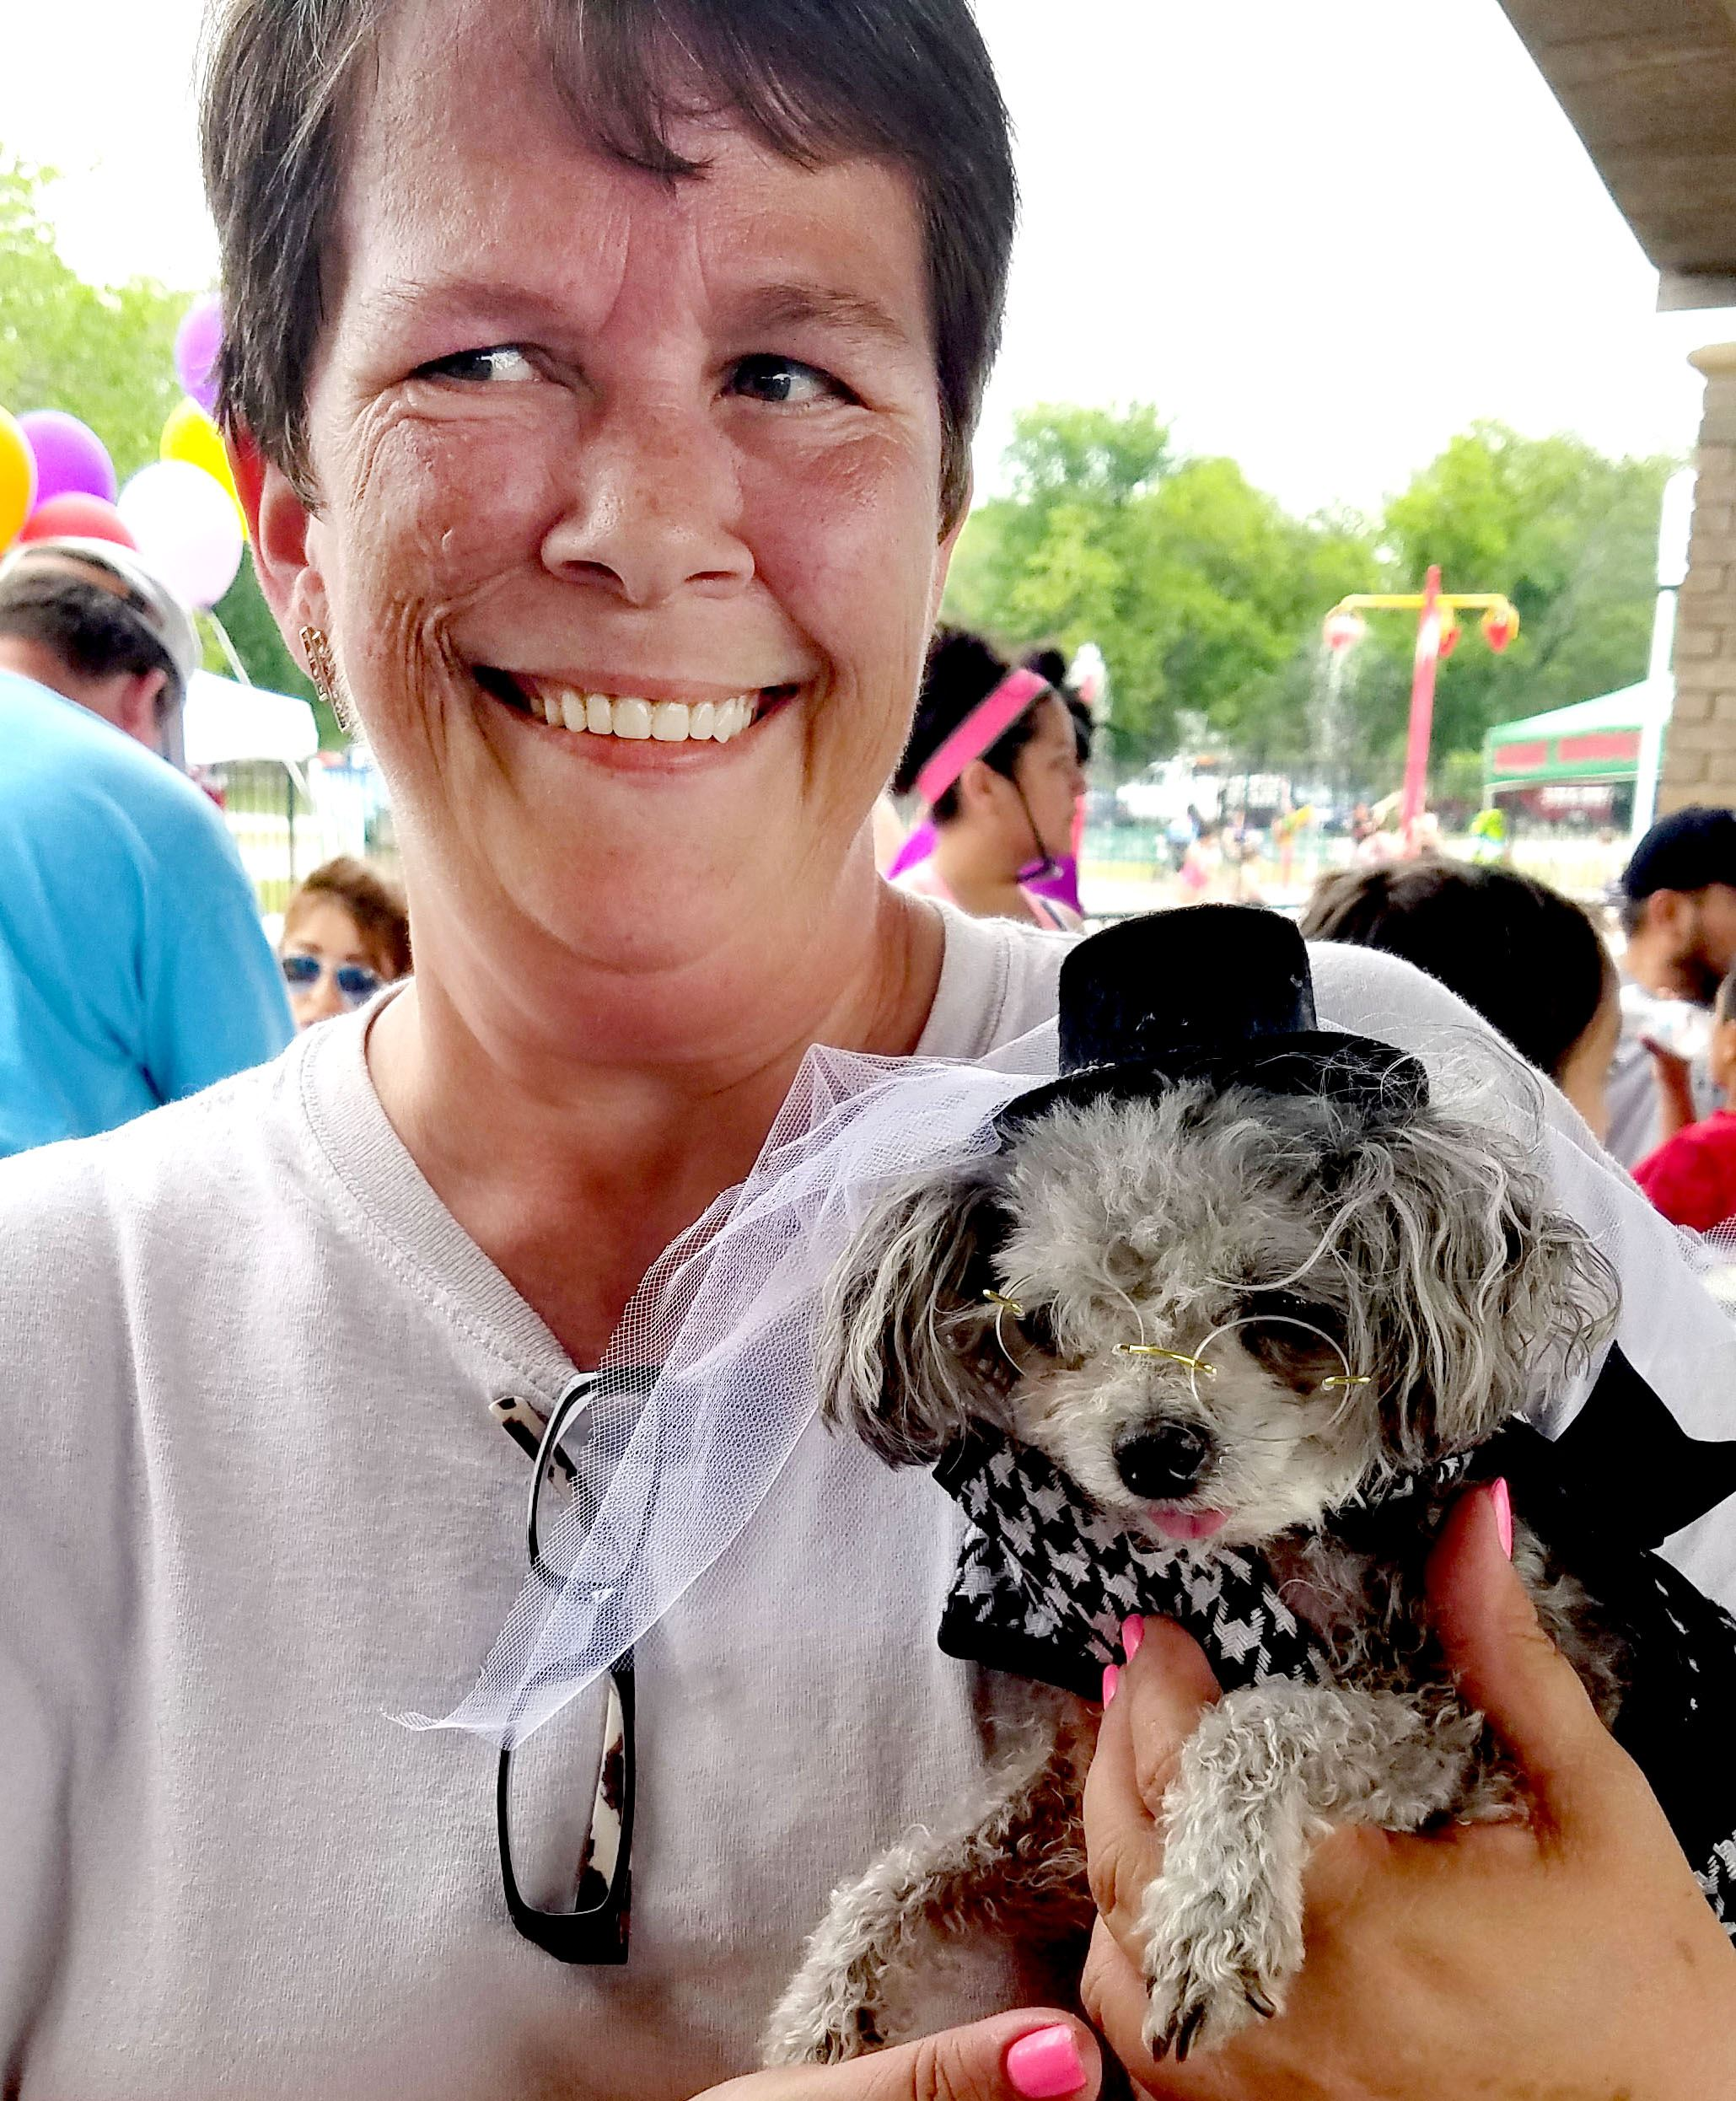 Woman Holding Costumed Dog at Bark in the Park